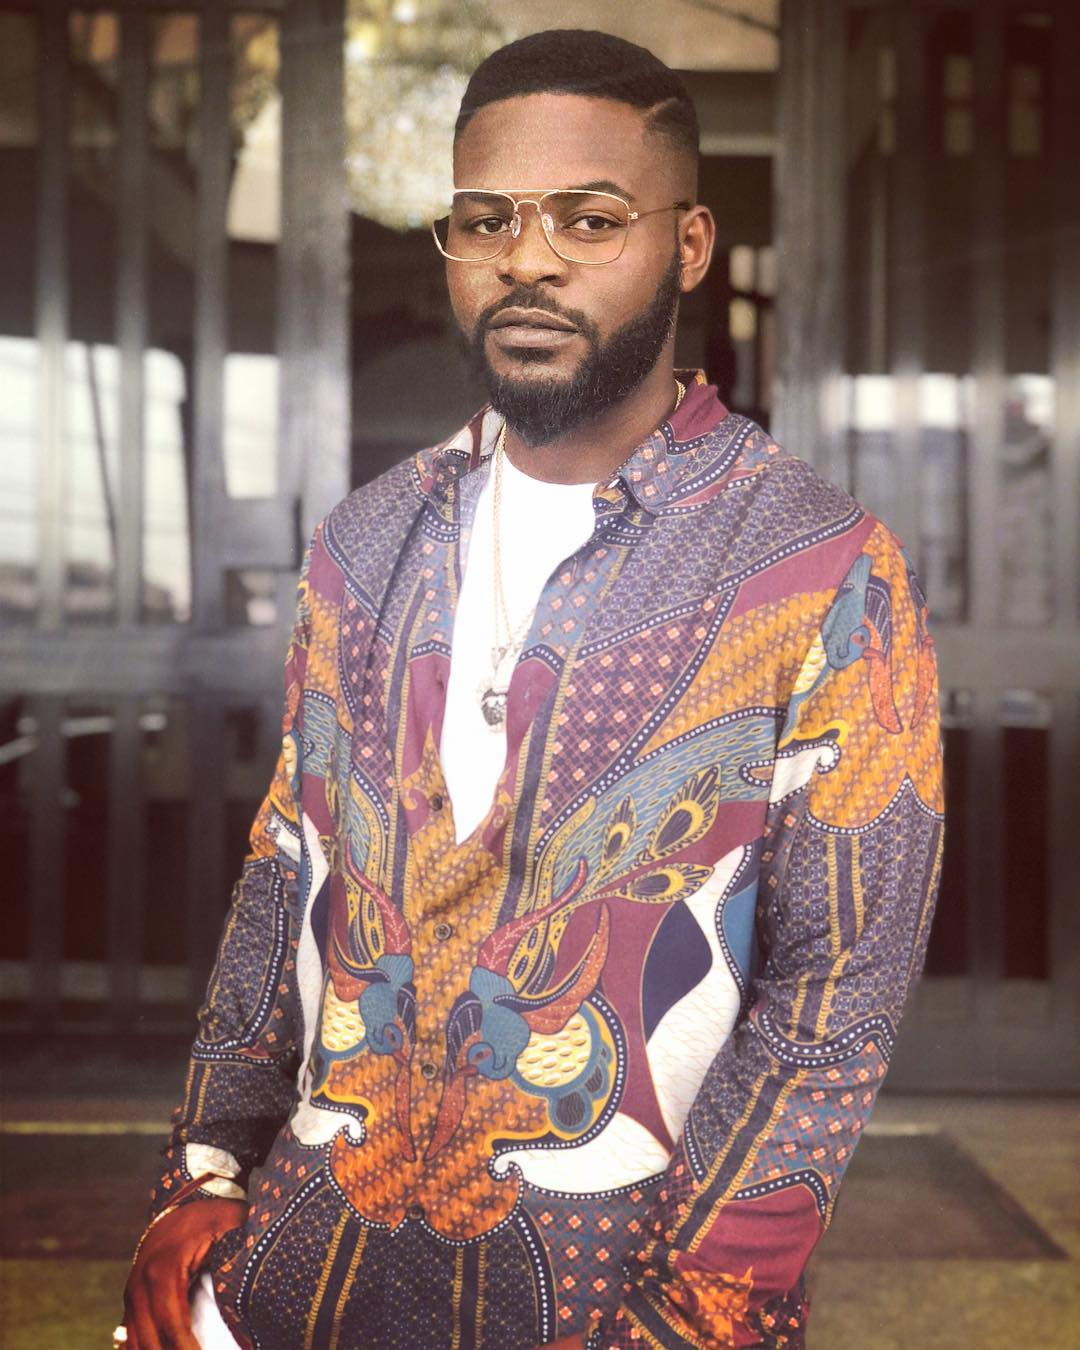 Download Falz Le Vrai Bahd Guy Mp3 Download